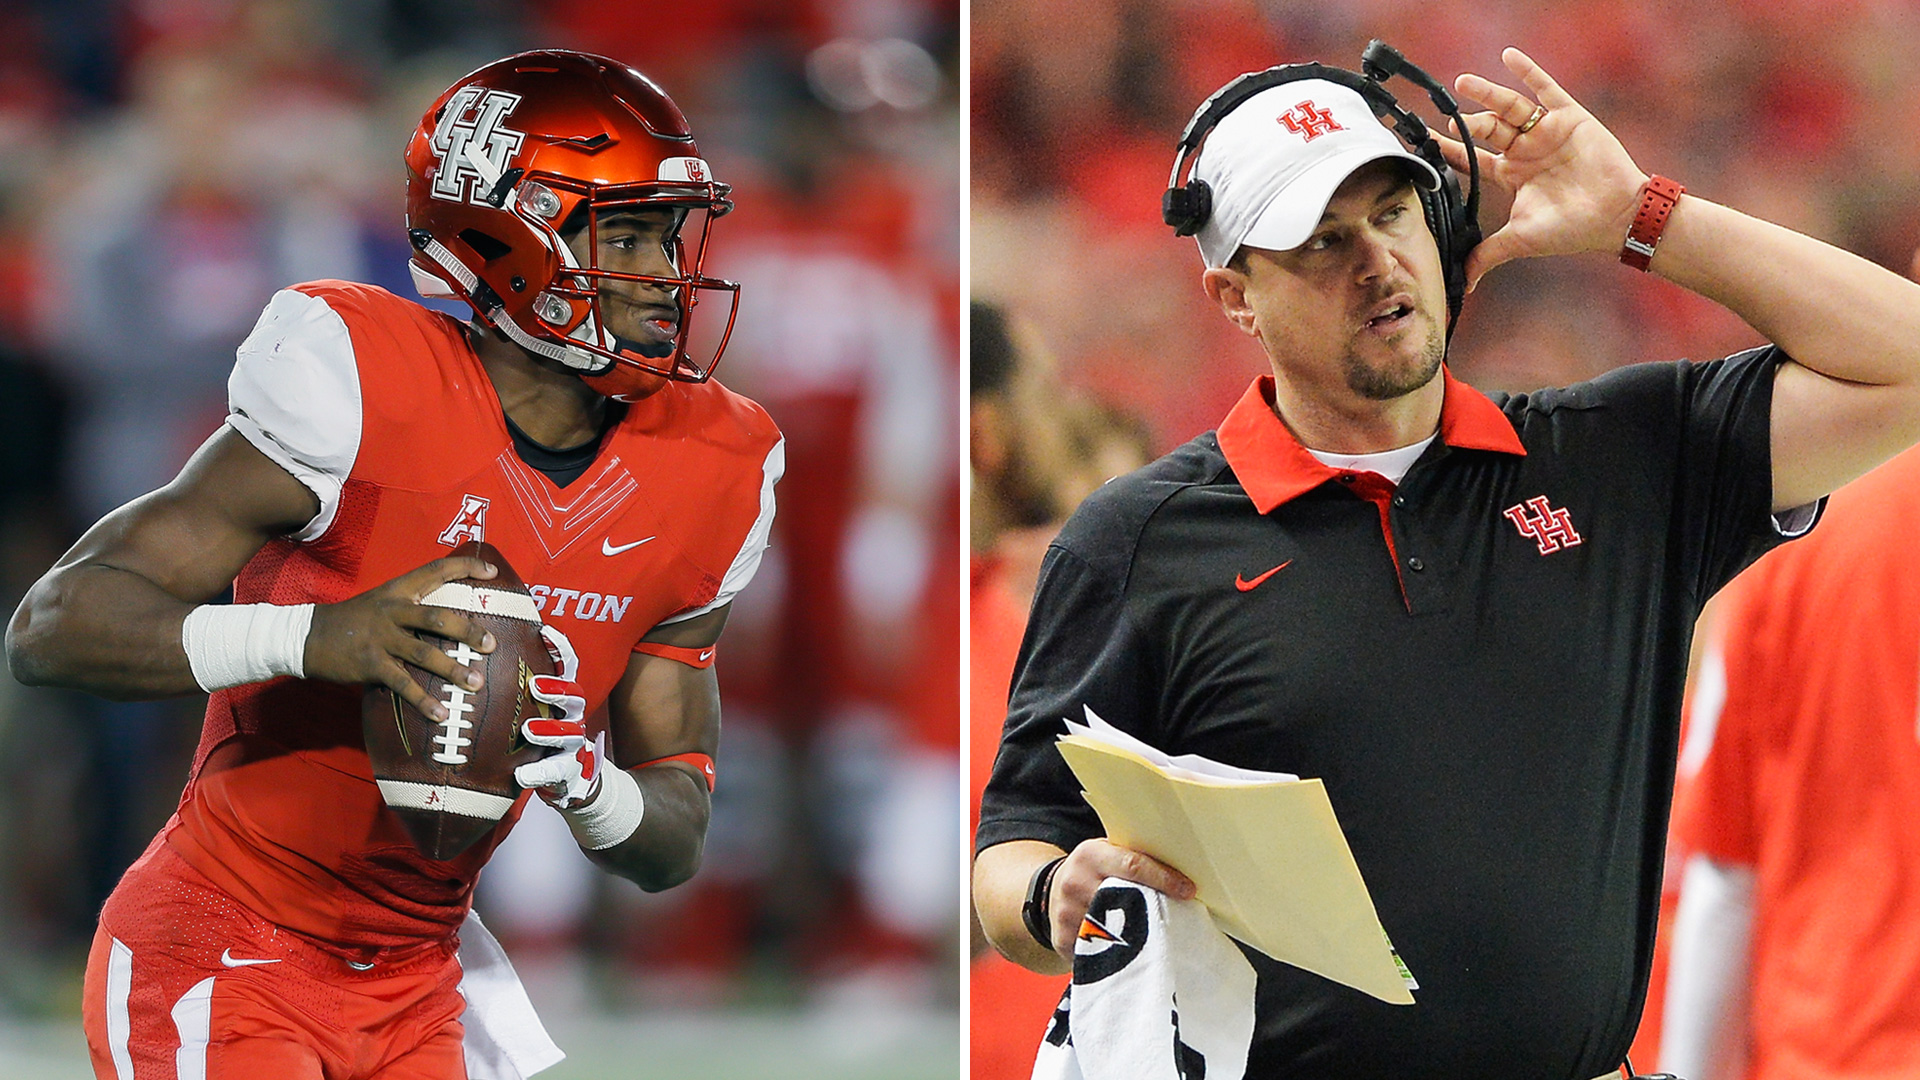 Greg-ward-jr-and-tom-herman-082216-getty-ftrjpg_1f30gvsrmvsxt1m1kd5d1l0t3b